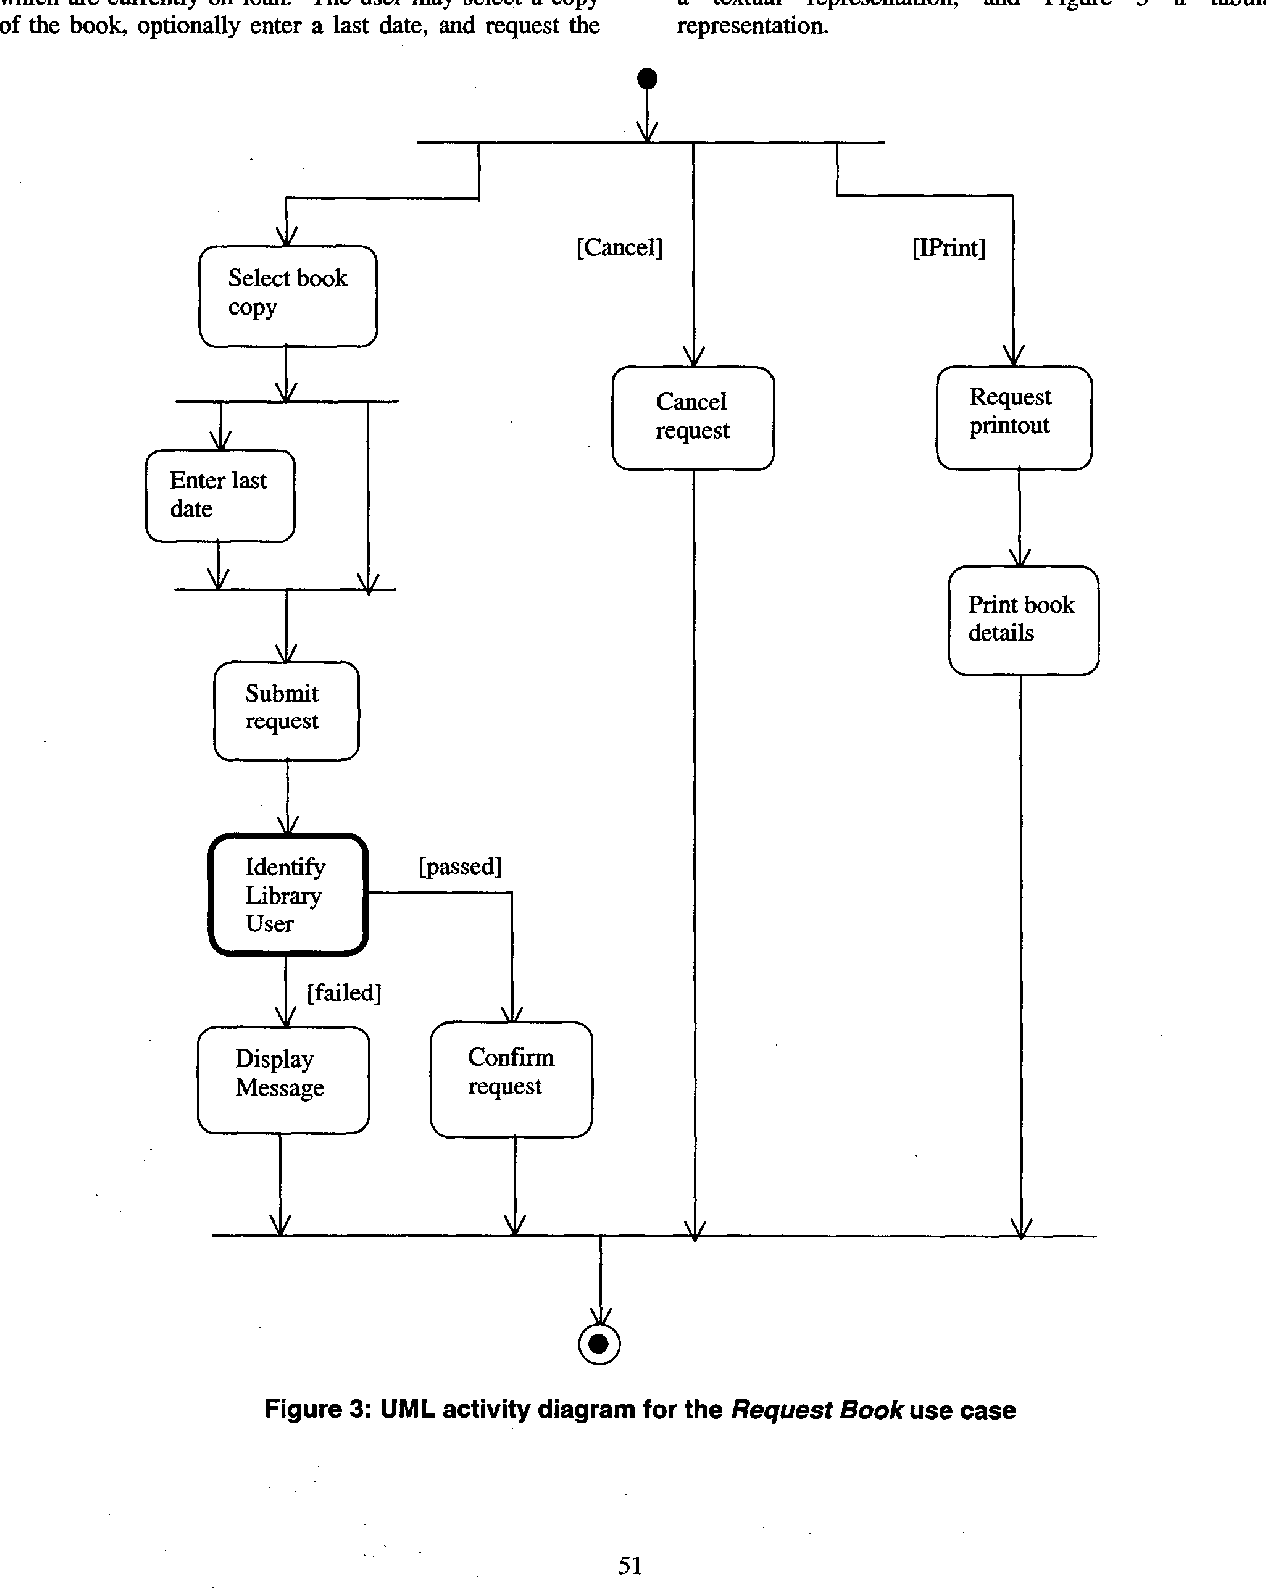 Extending Uml Use Case Modelling To Support Graphical User Interface Design Semantic Scholar